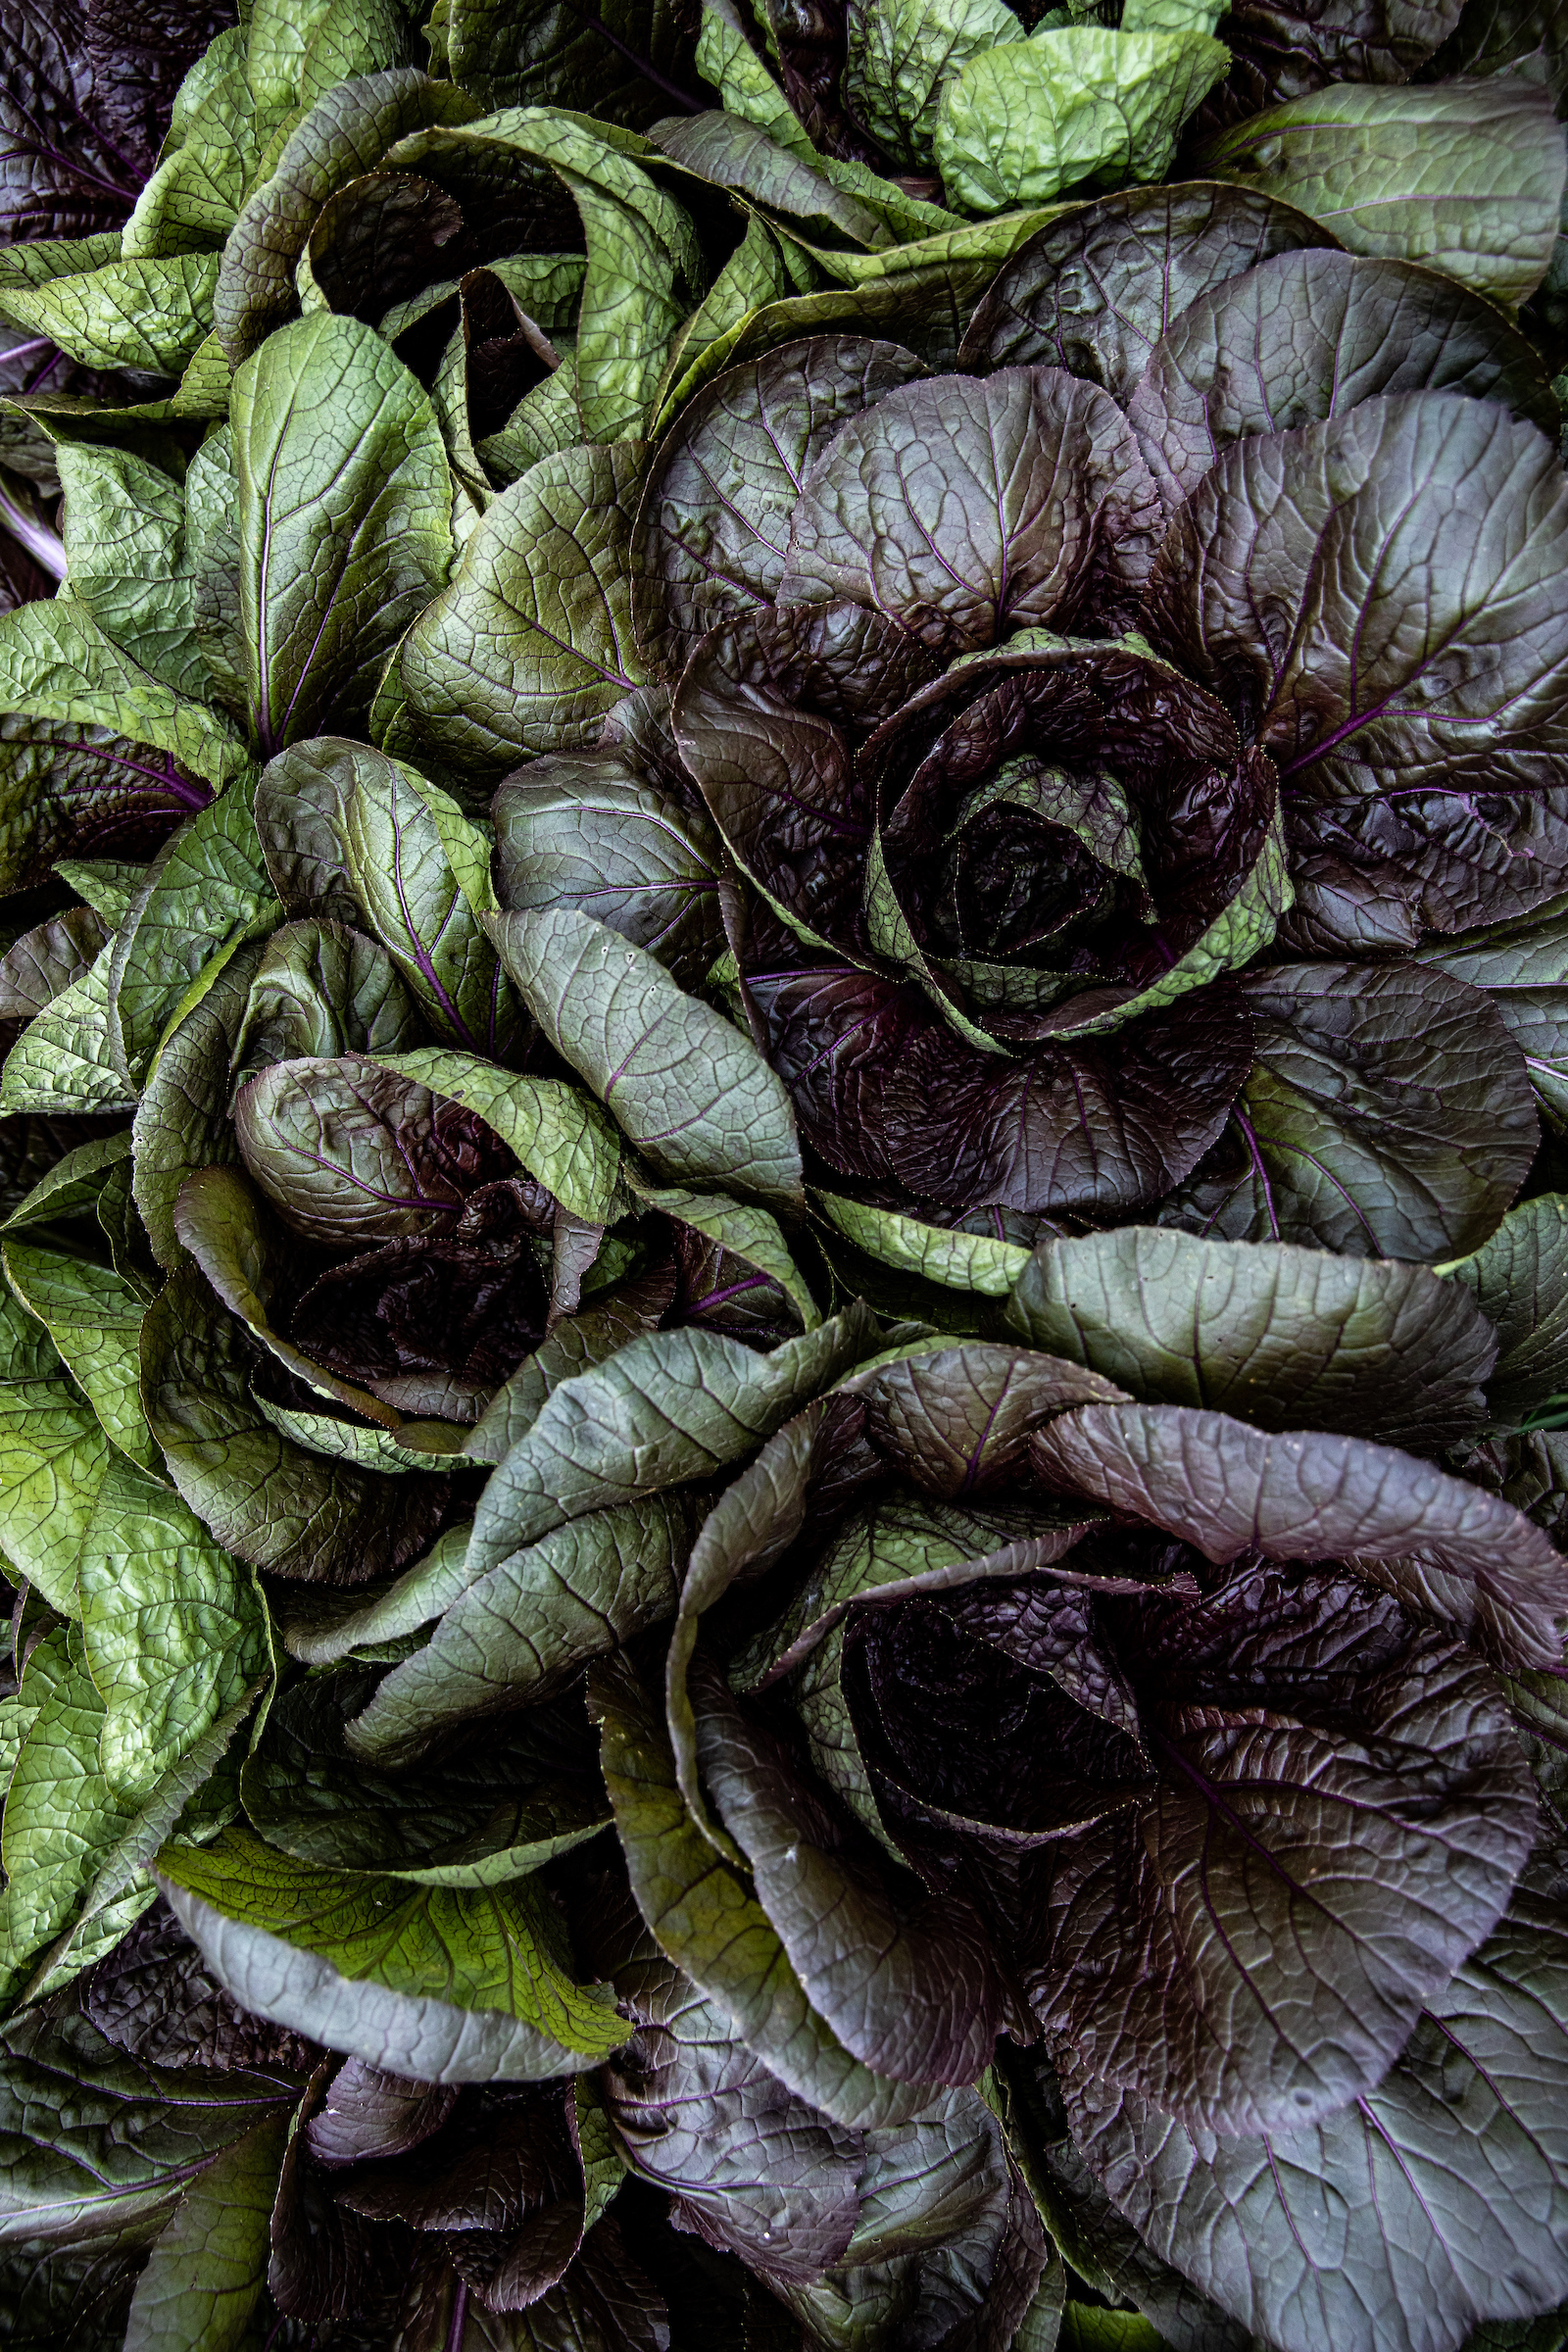 Purple lettuce tightly packed together in a garden plot.